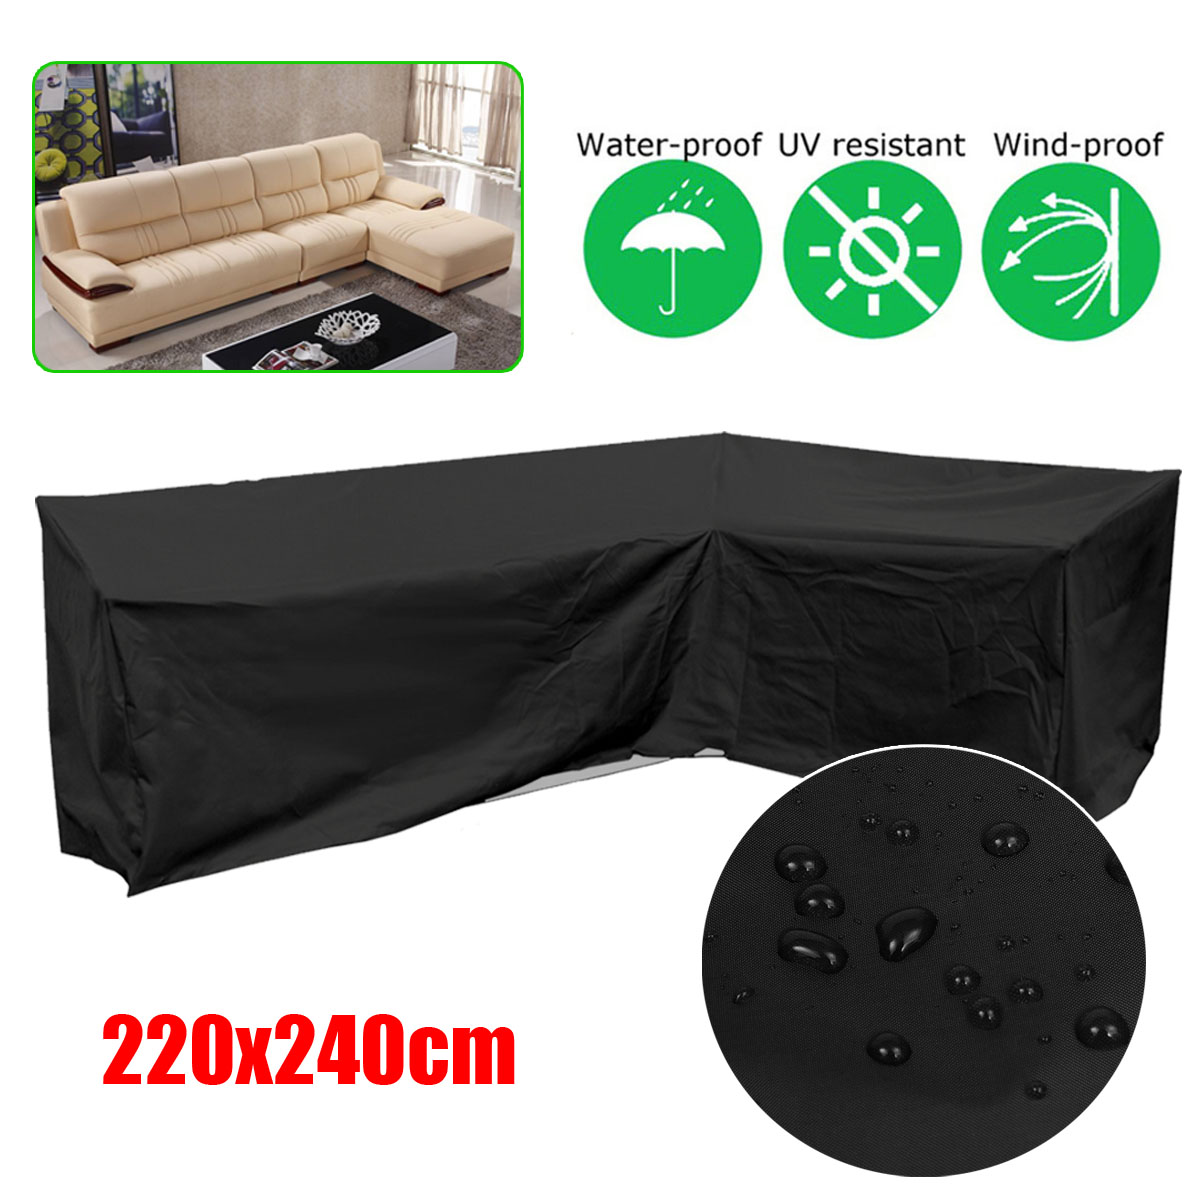 Fantastic Us 31 18 42 Off Black Green Silver 220X240Cm L Shape Corner Sofa Couch Cover Waterproof Dustproof Covers For Garden Outdoor Supplies In All Purpose Theyellowbook Wood Chair Design Ideas Theyellowbookinfo